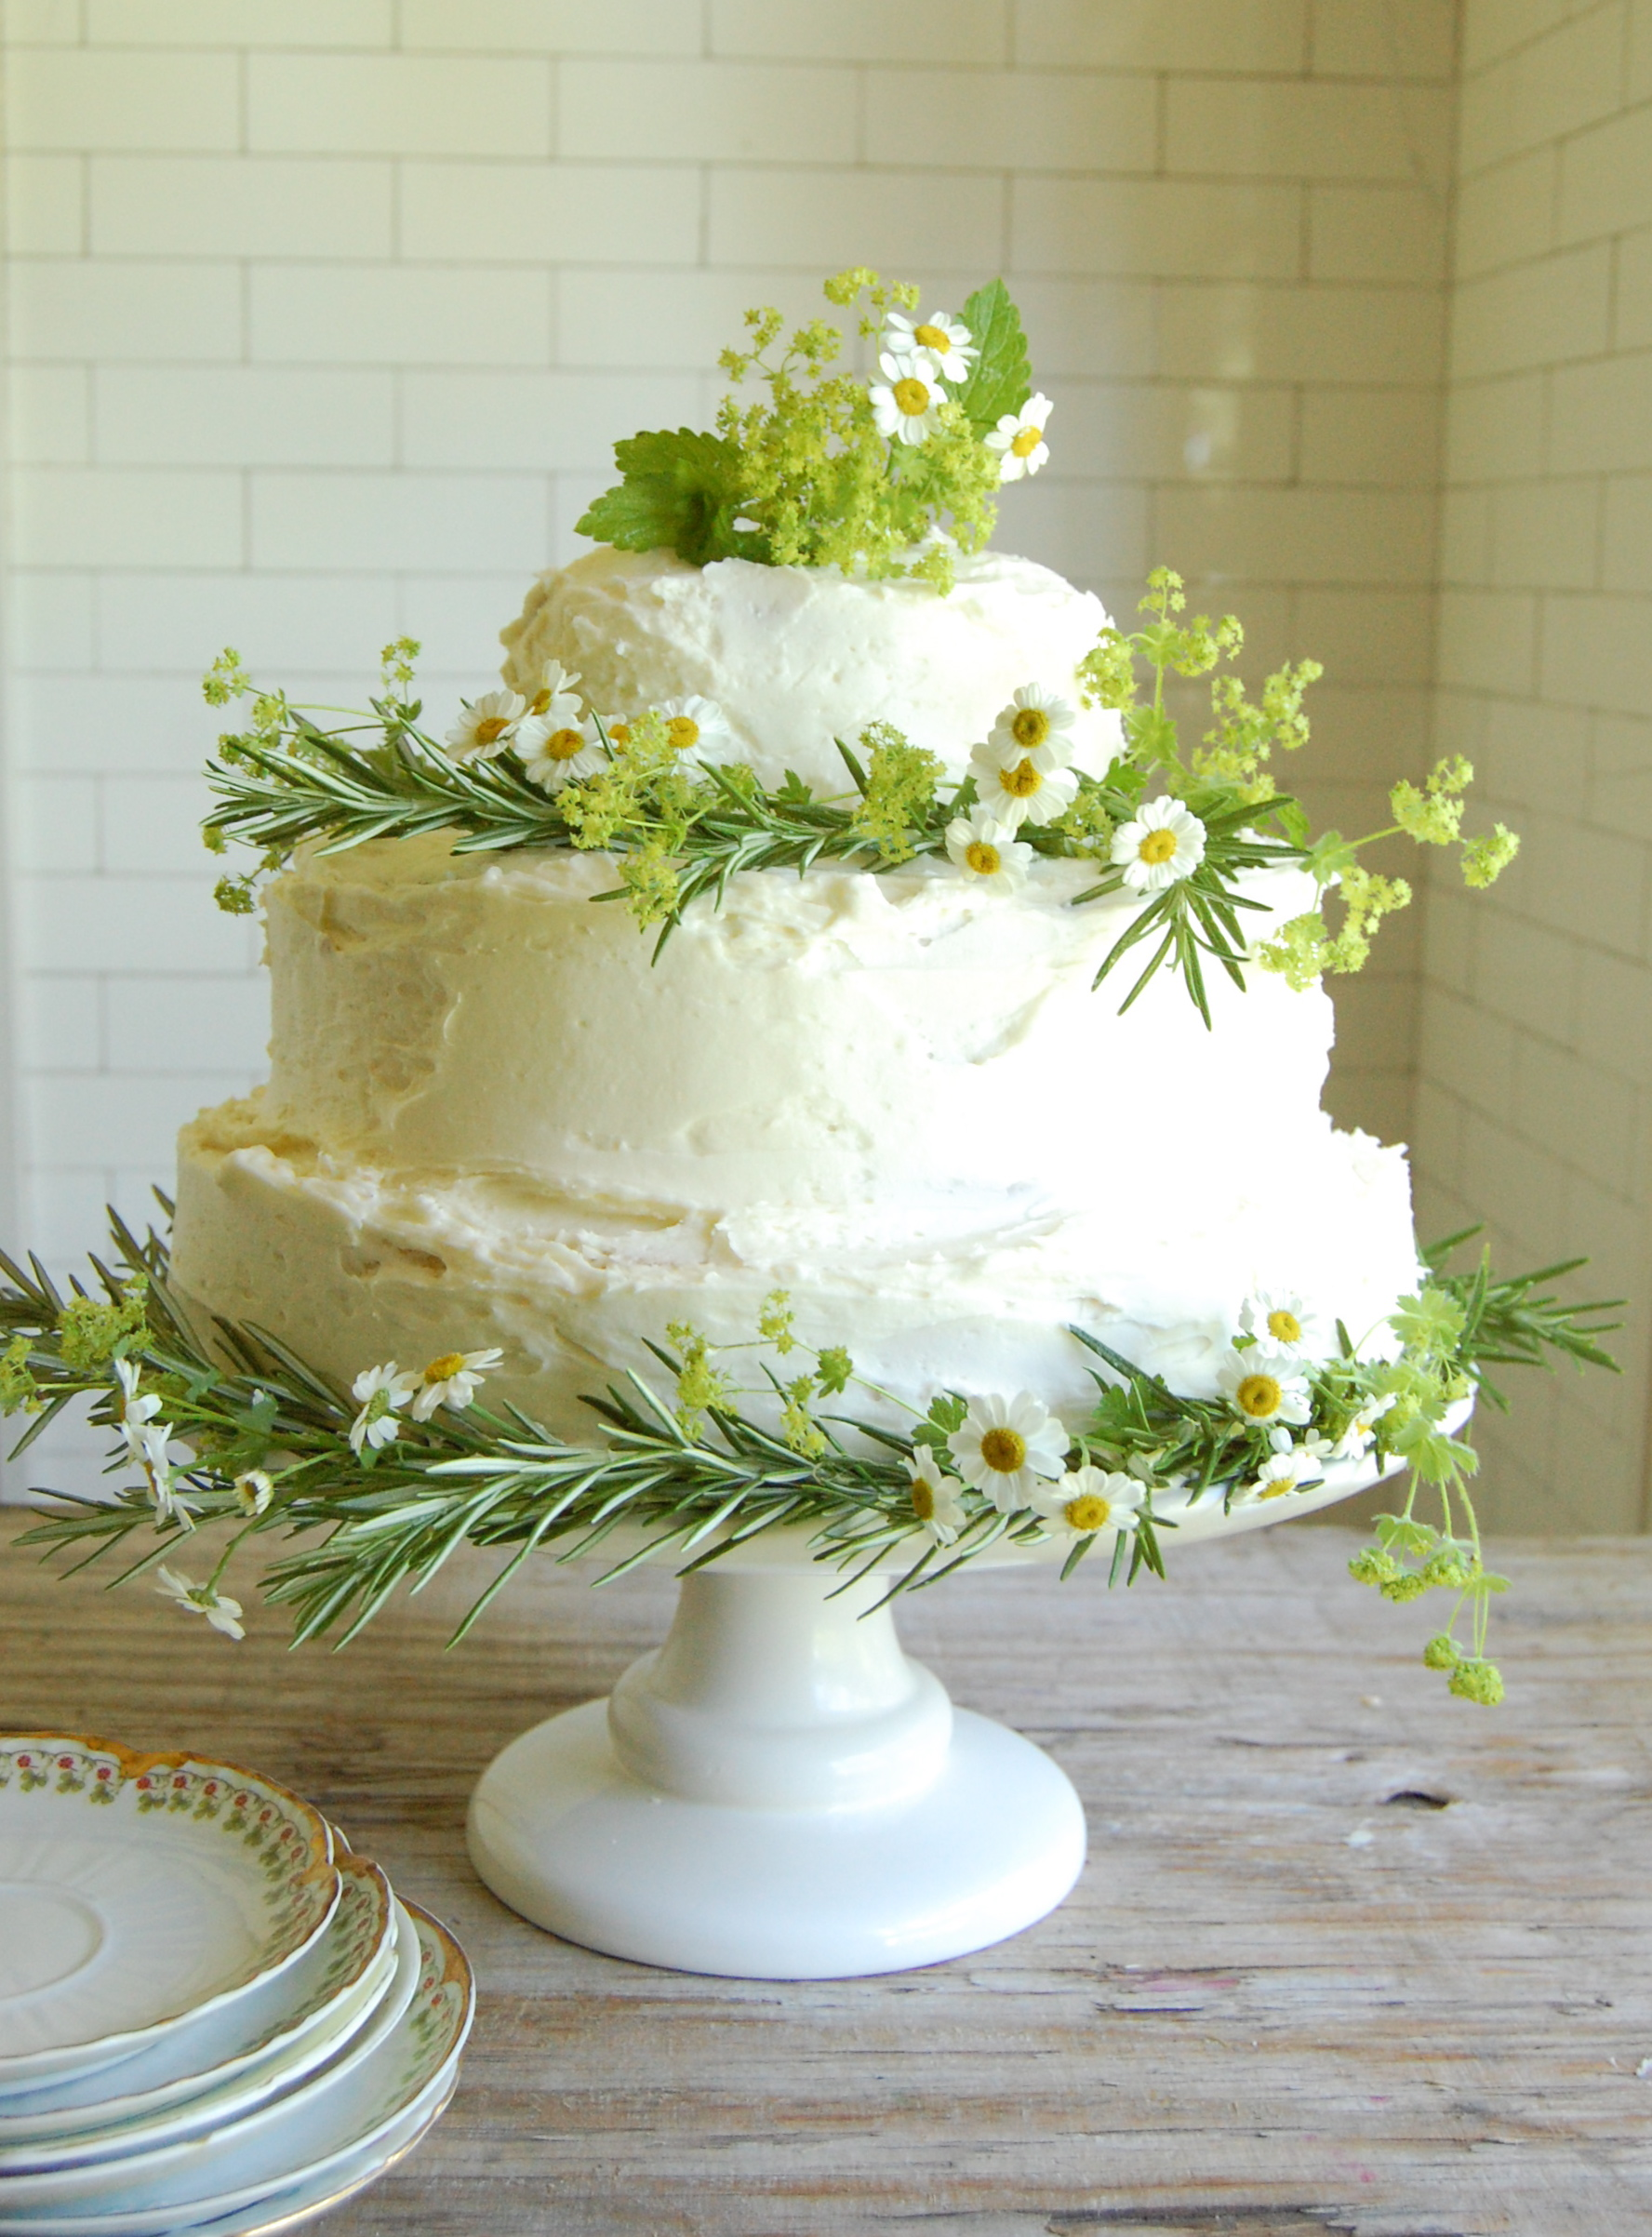 Cake Decorating Homemade : Wedding Cake Dilemma